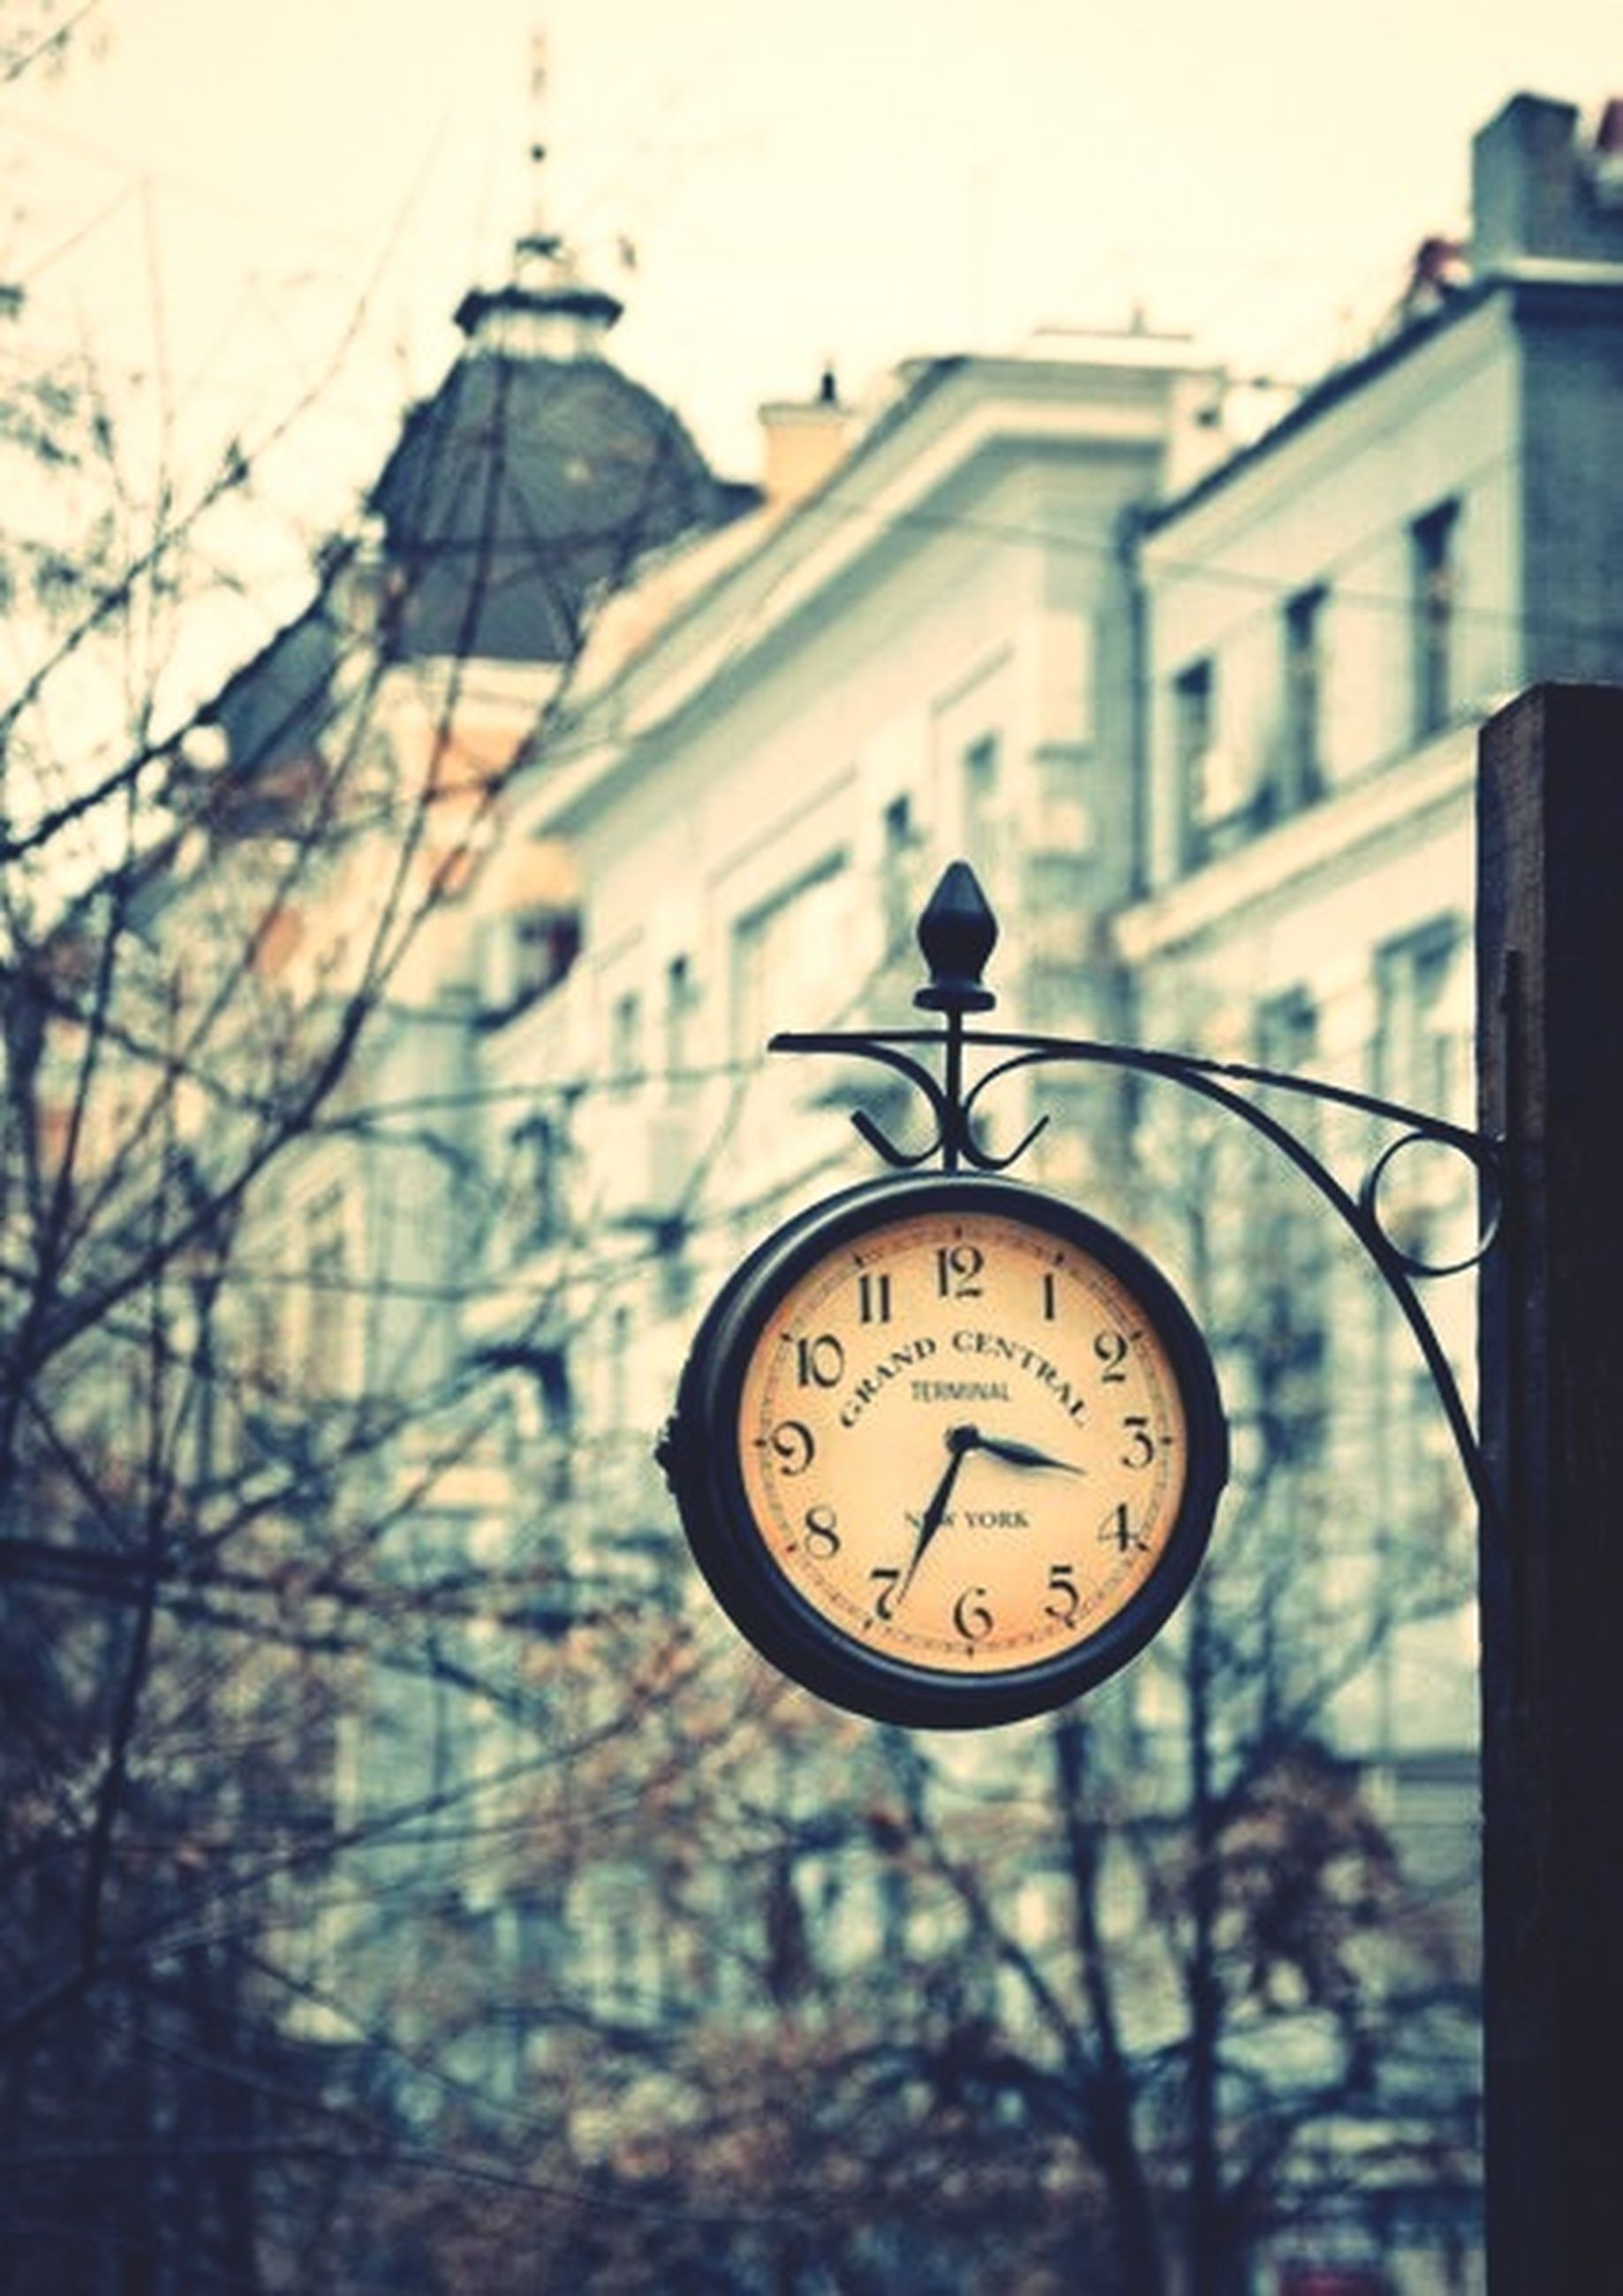 clock, time, communication, text, number, clock tower, close-up, low angle view, clock face, building exterior, architecture, western script, built structure, focus on foreground, guidance, religion, no people, day, information sign, road sign